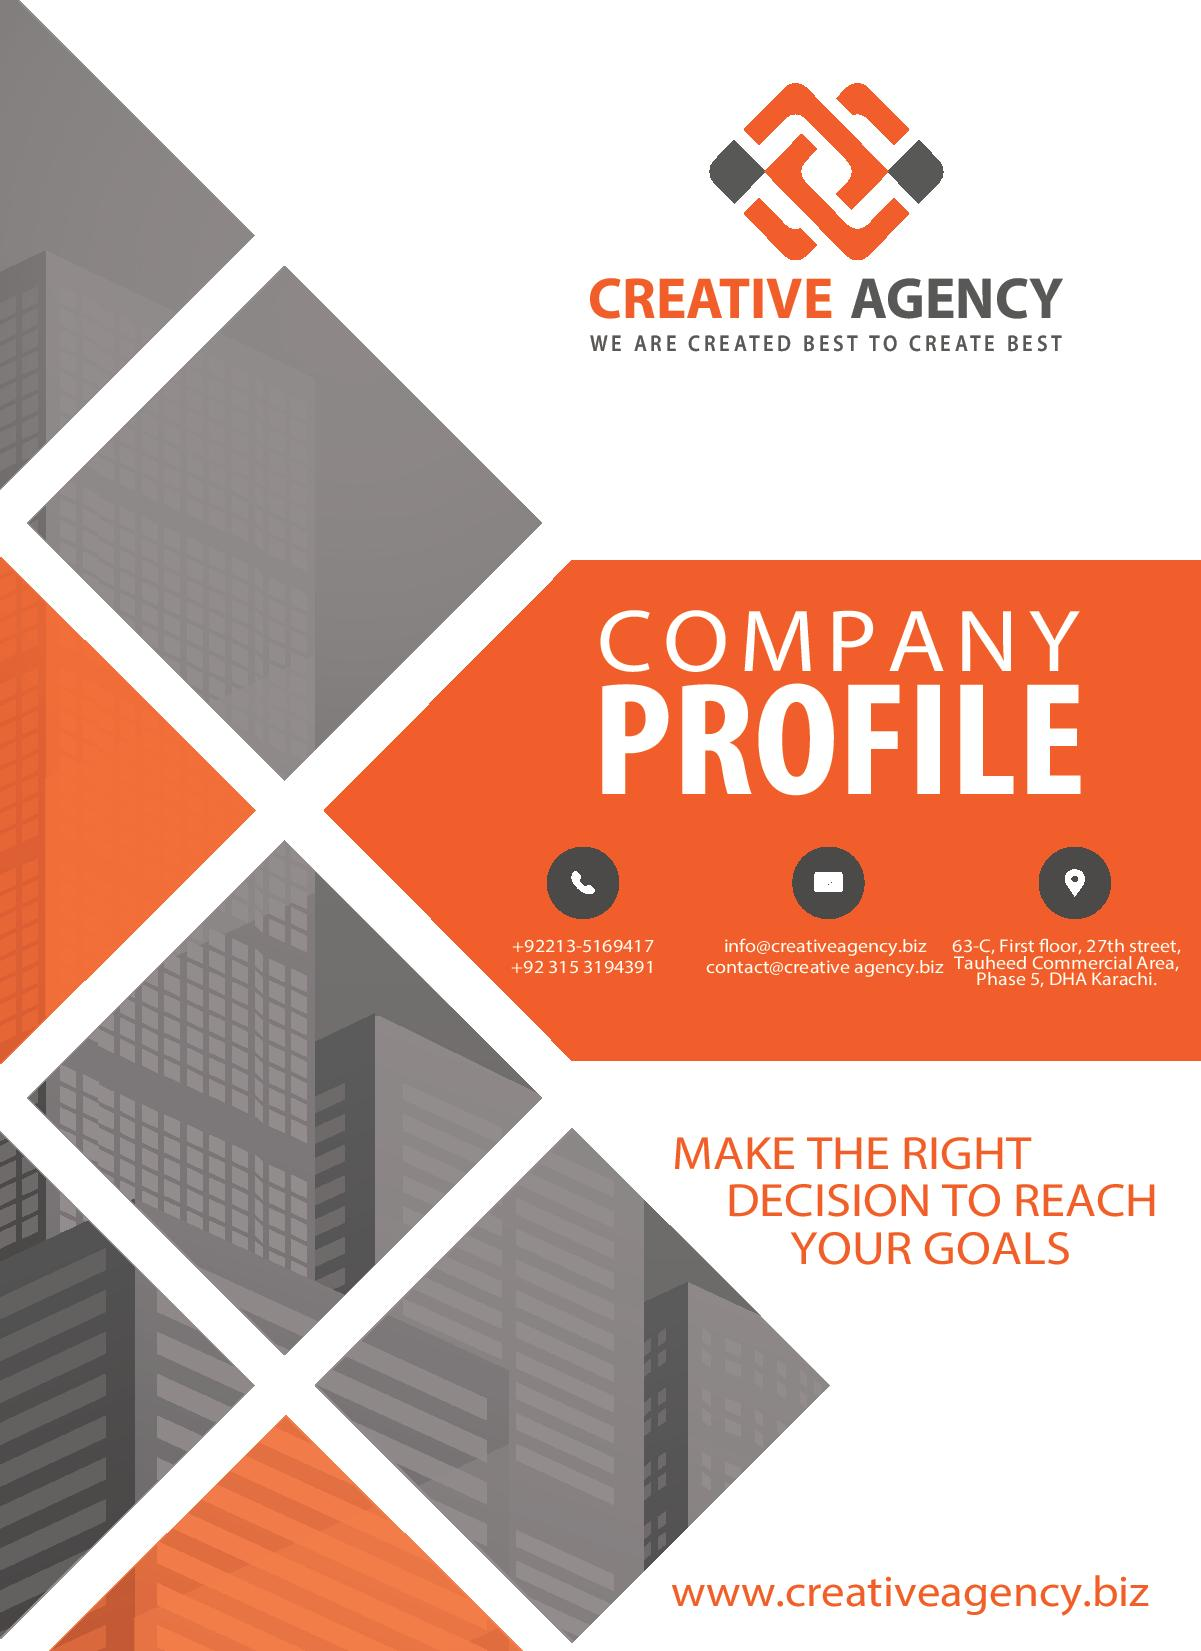 //creativeagency.biz/wp-content/uploads/2019/05/Company-Profile-Creative-Agency-min-page-001.jpg